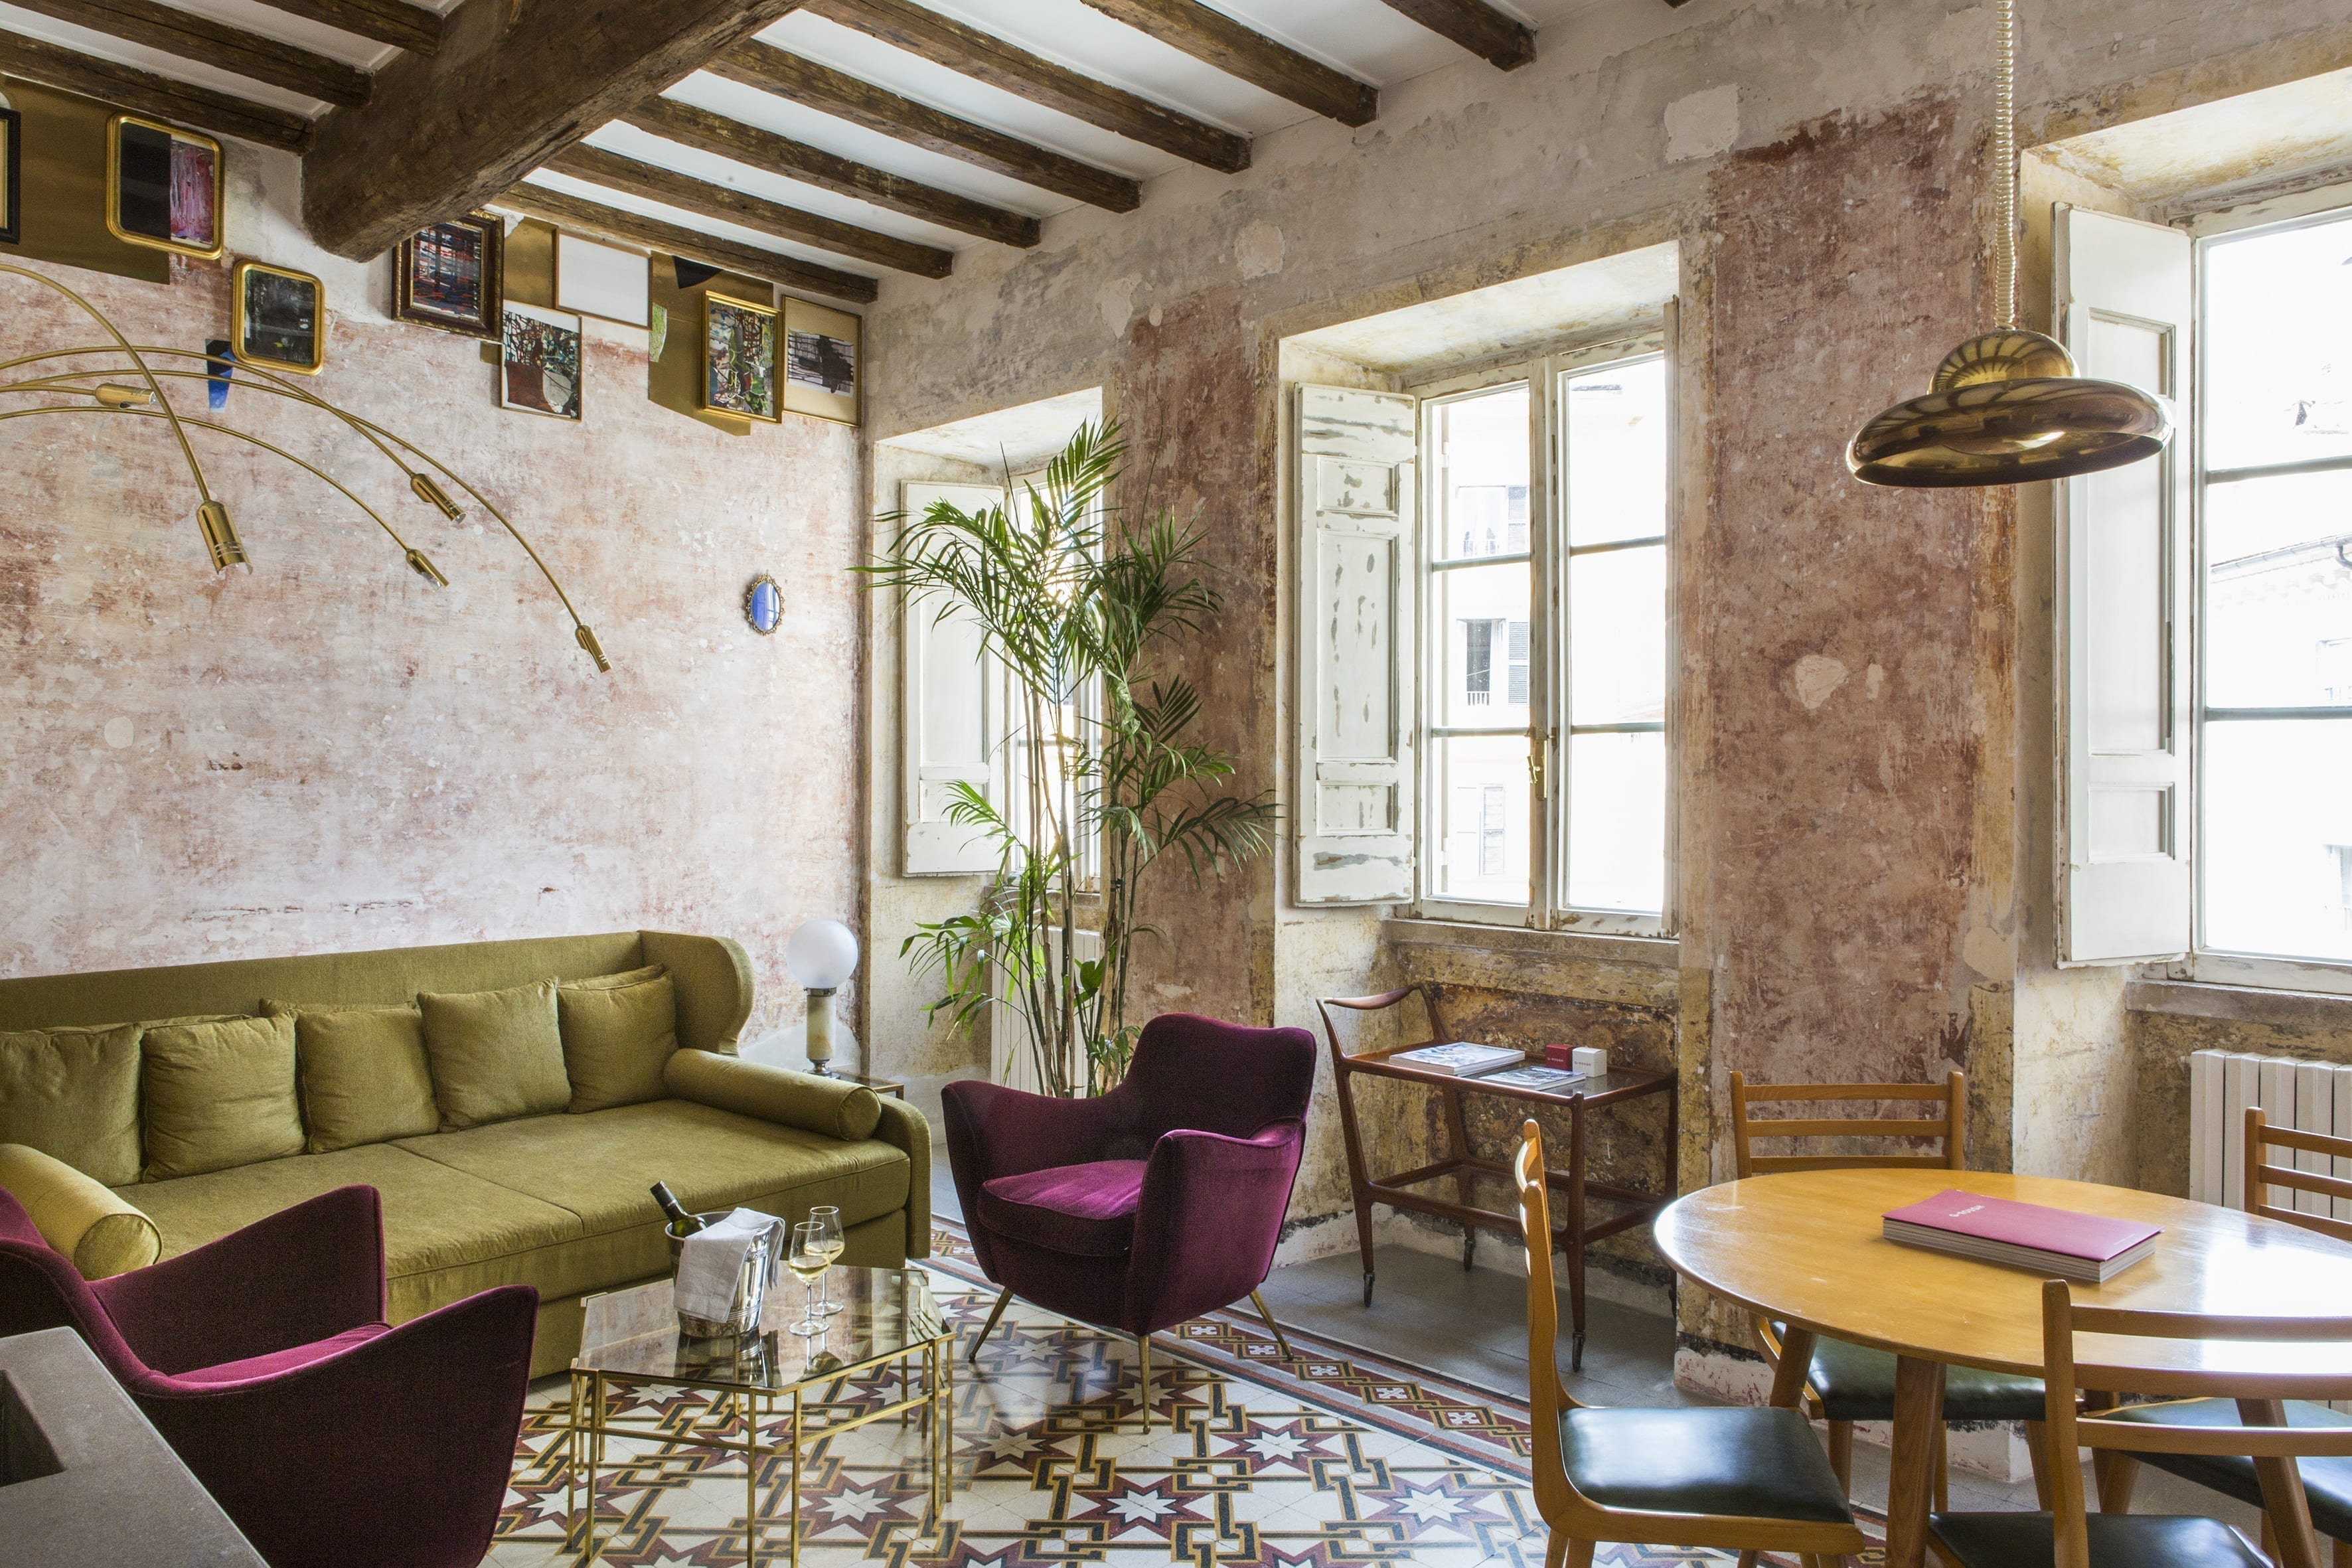 Nest Italy - Design Boutique Hotel in Rome